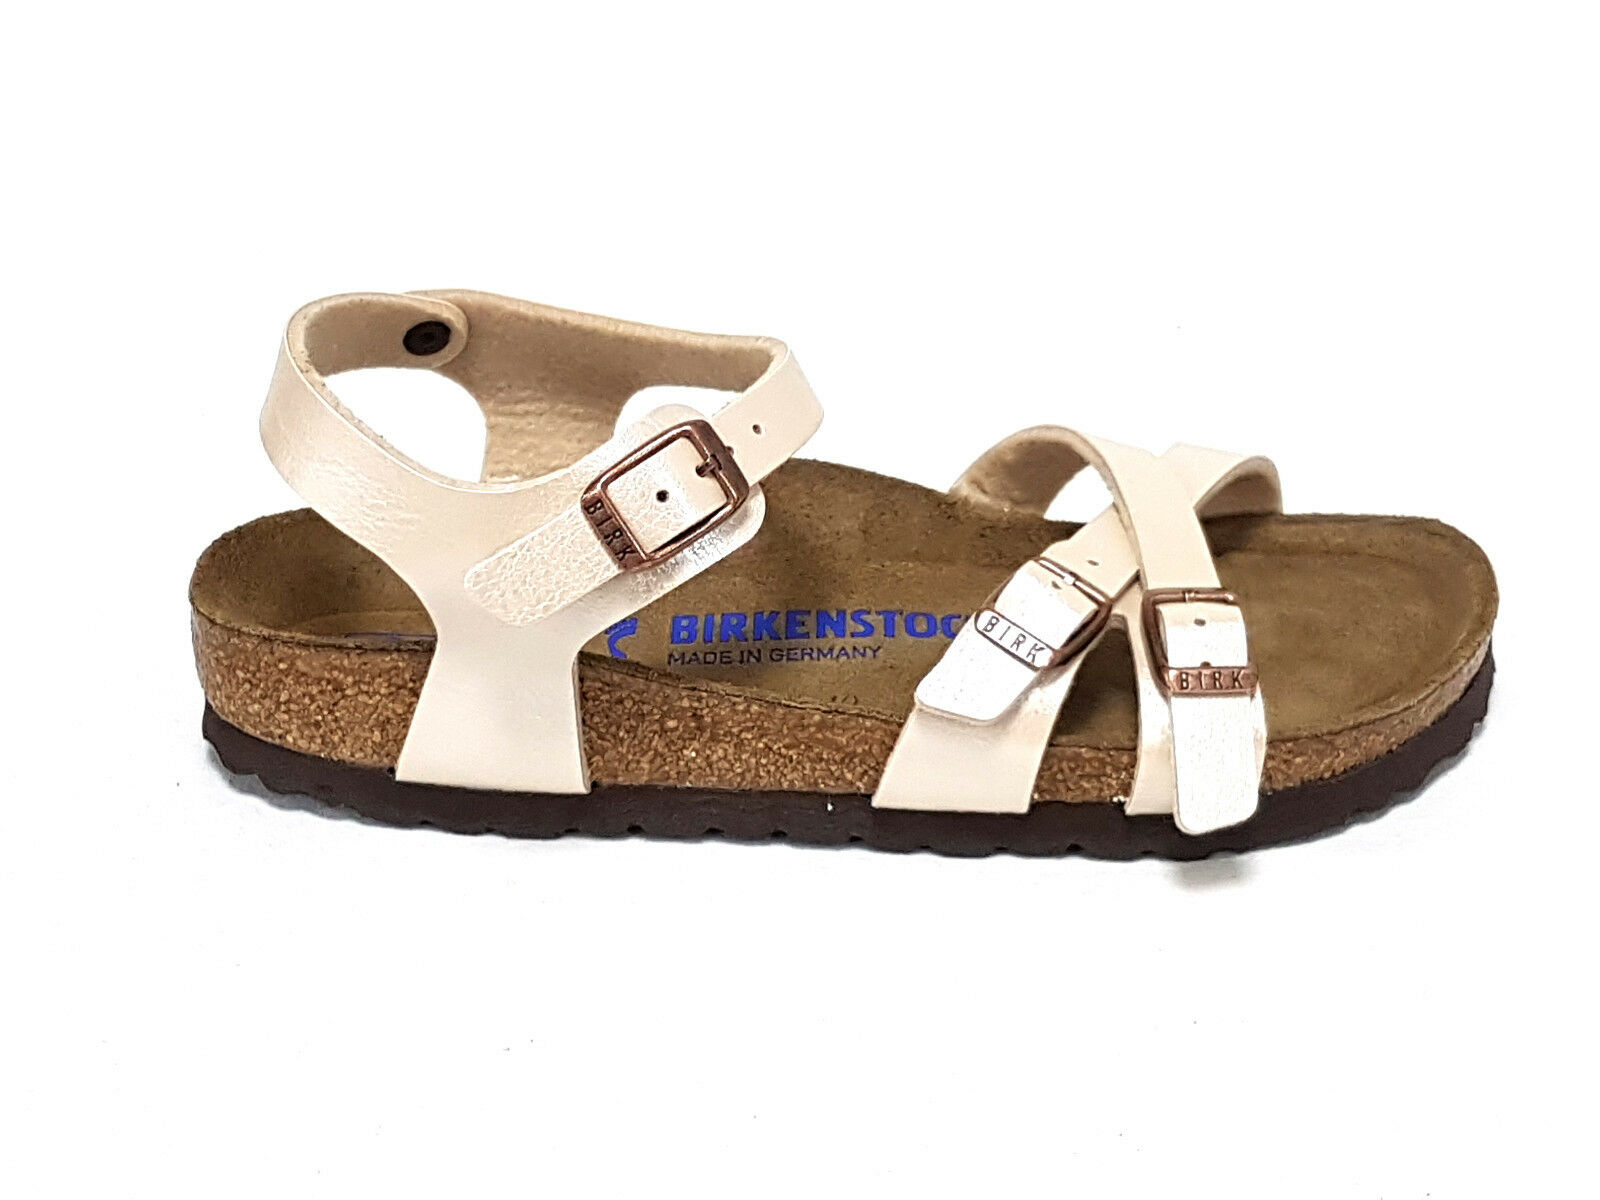 UGG Australia Women's Holly Sheepskin and Leather Sandals in Soft Ochre 1019870